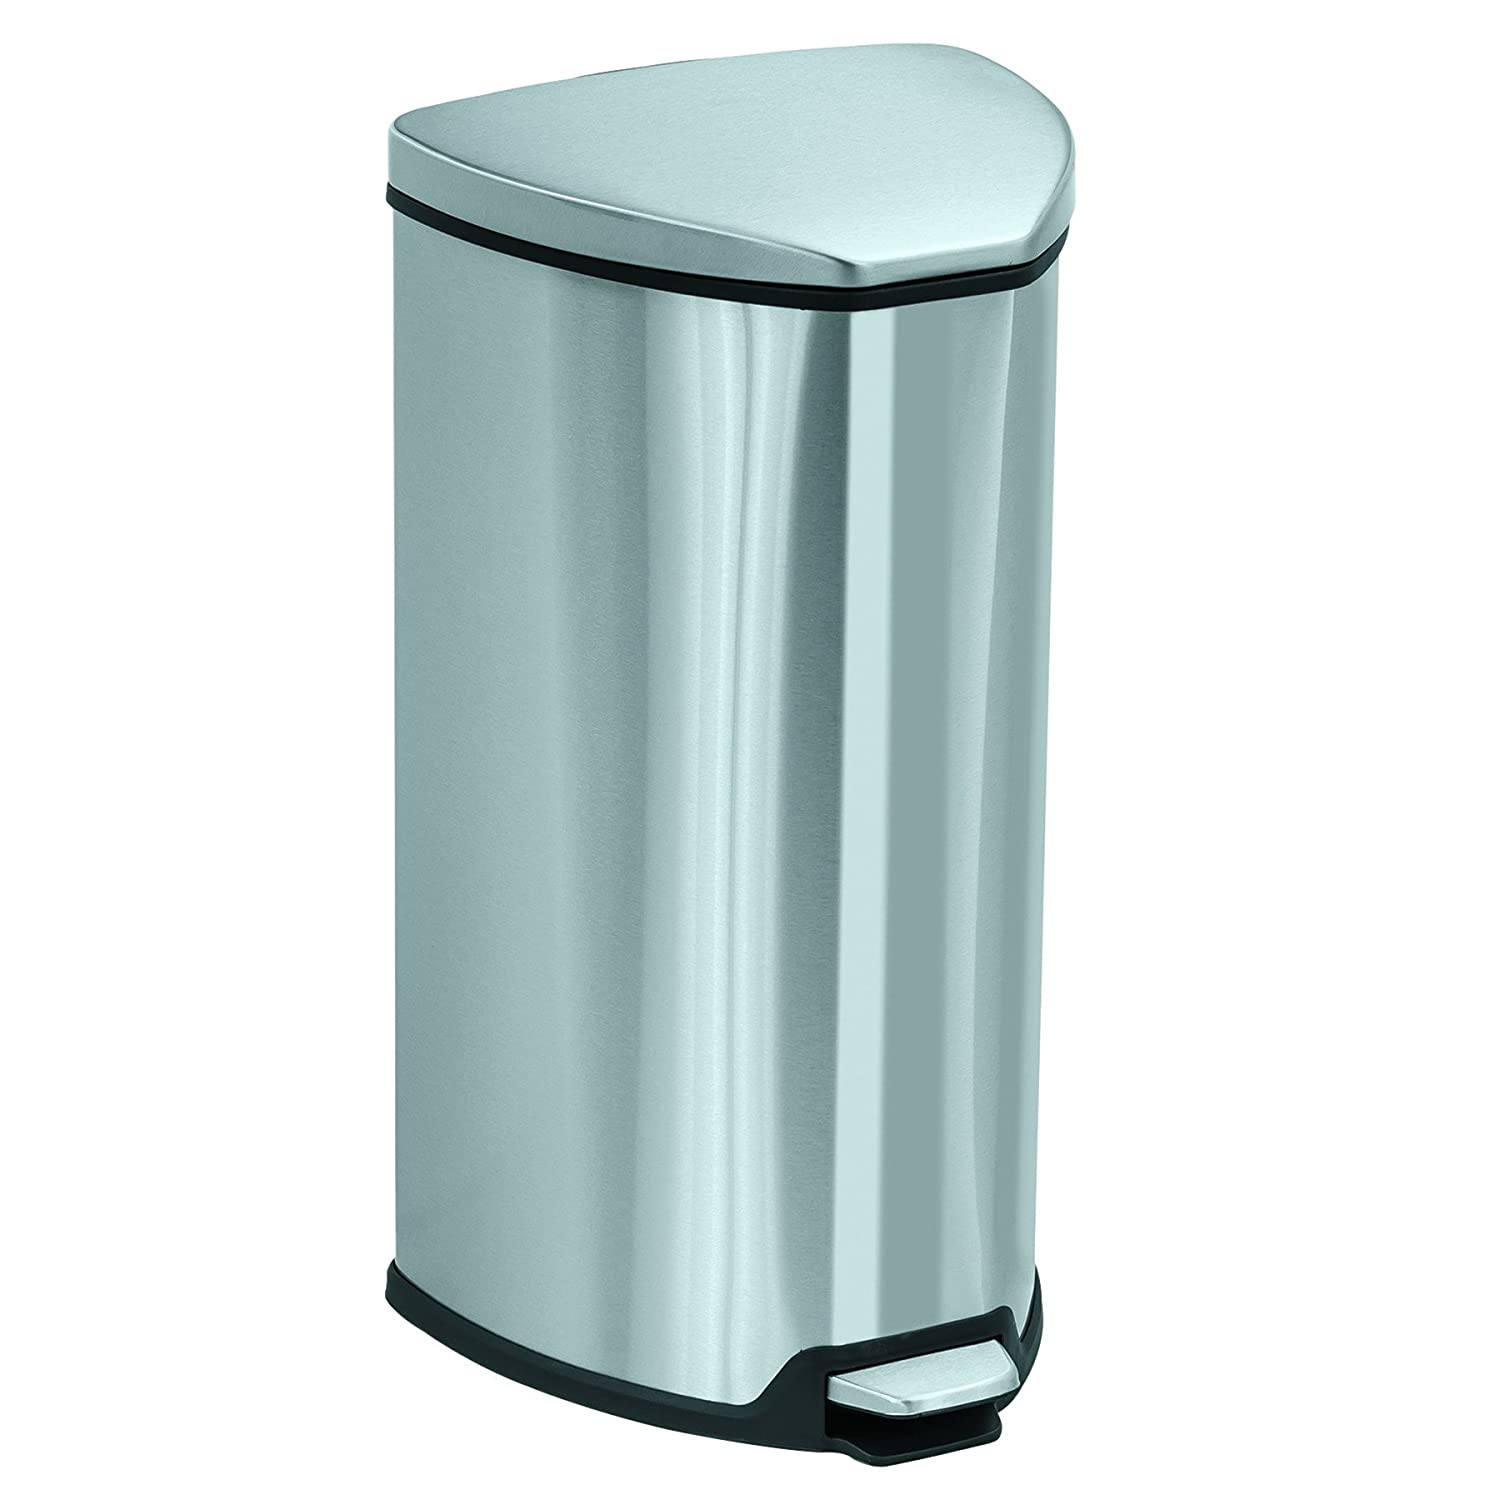 Amazon.com: Safco Products 9687SS Stainless Step-On Trash Can, 10 ...